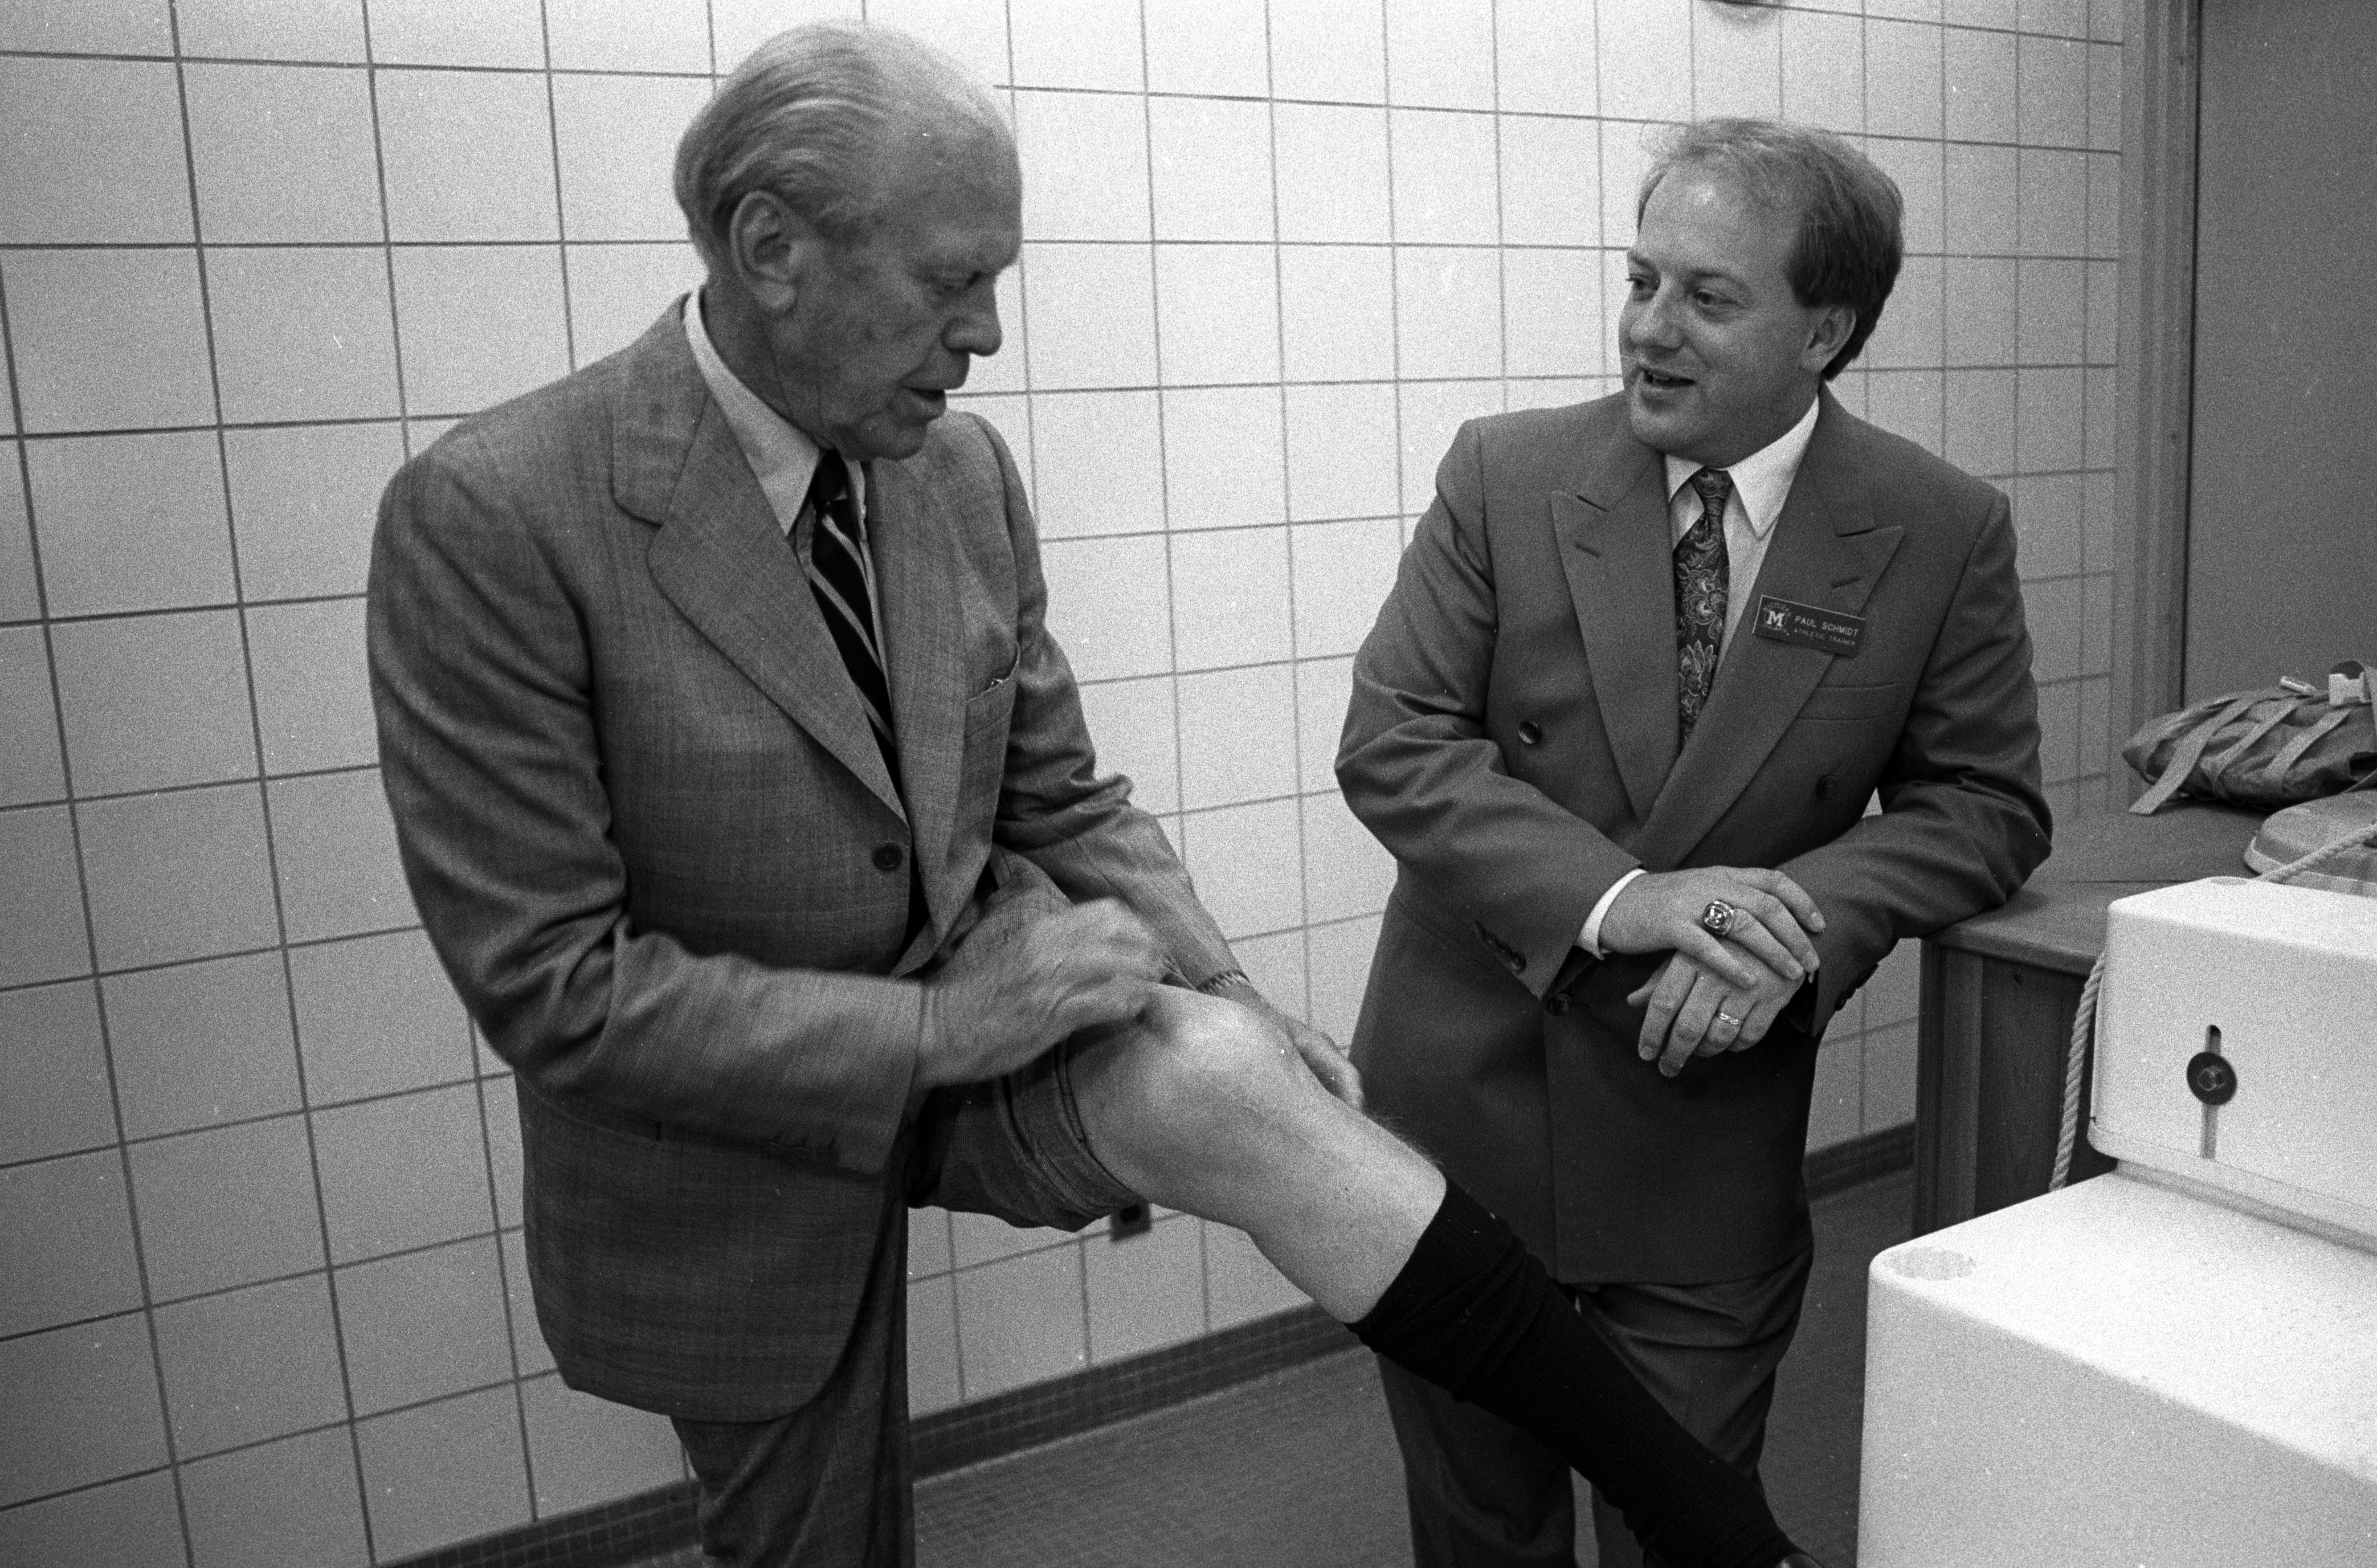 Gerald Ford Shows Off Scars From a Knee Injury Sustained While Playing Football of the University of Michigan, June 1991 image